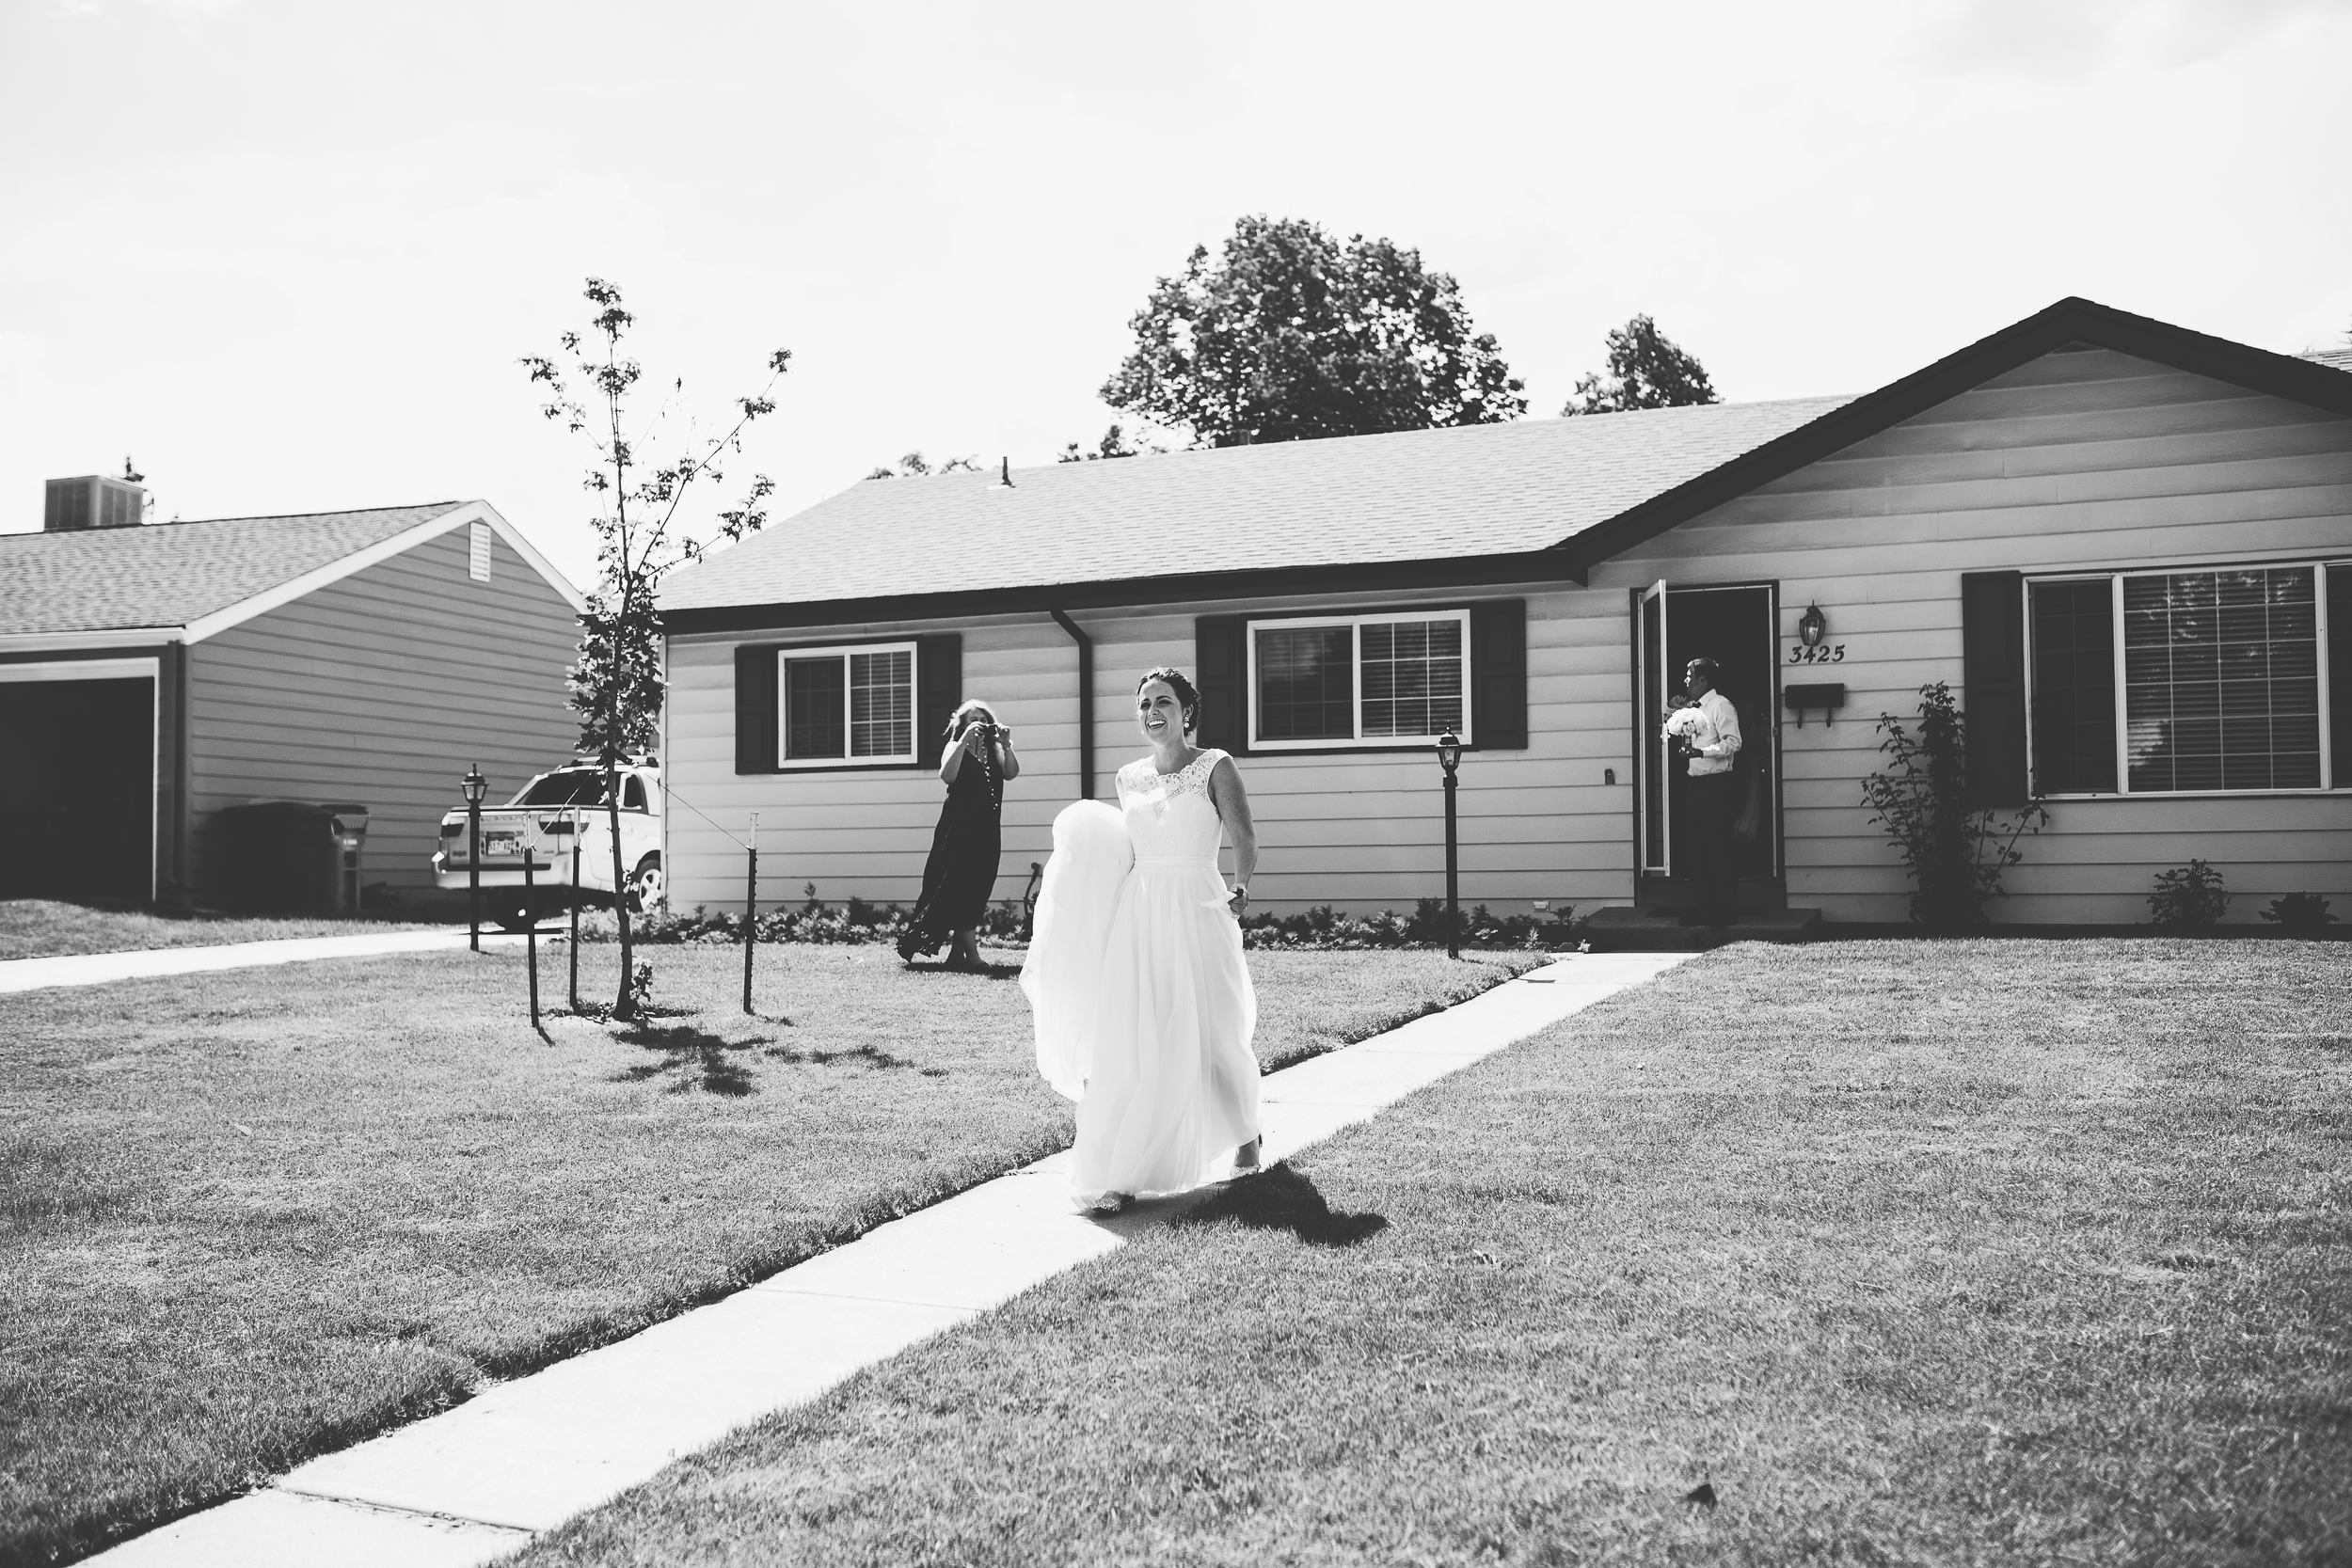 Coohills Wedding Photographer - bride leaving house for wedding